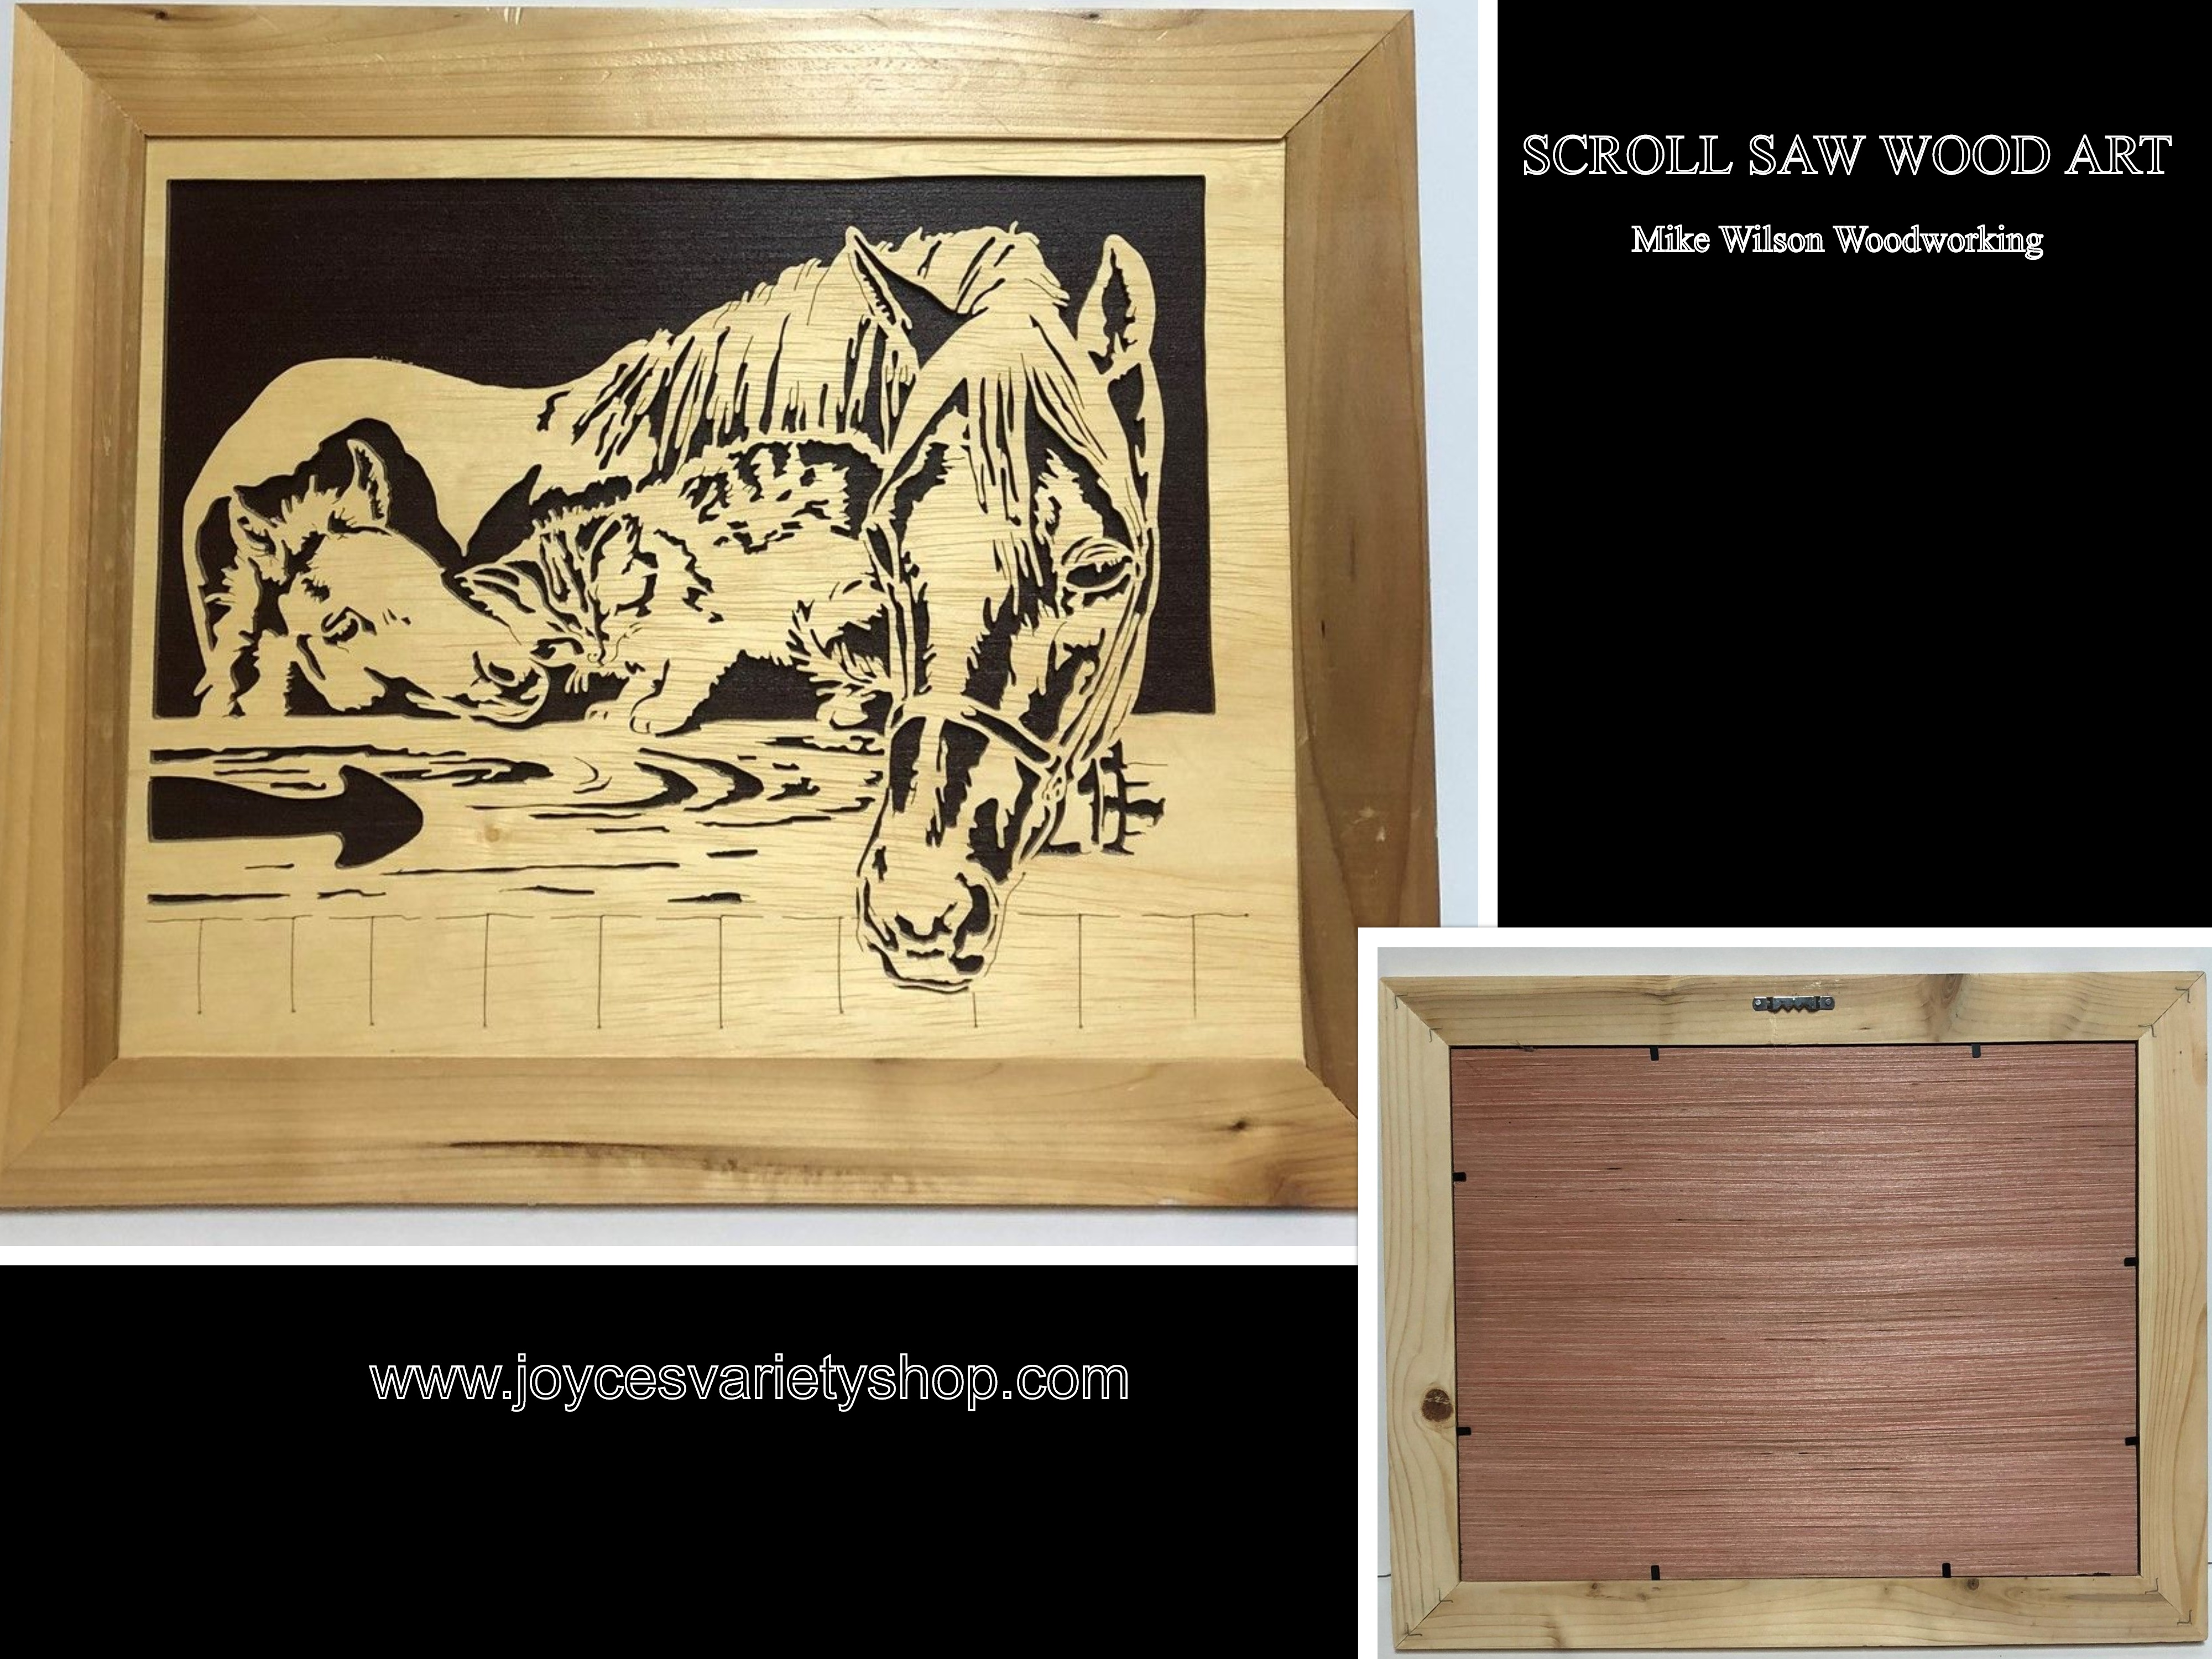 "Scroll Saw Art Mike Wilson Woodwork Horse & Cat Play 17"" x 14"" Framed"